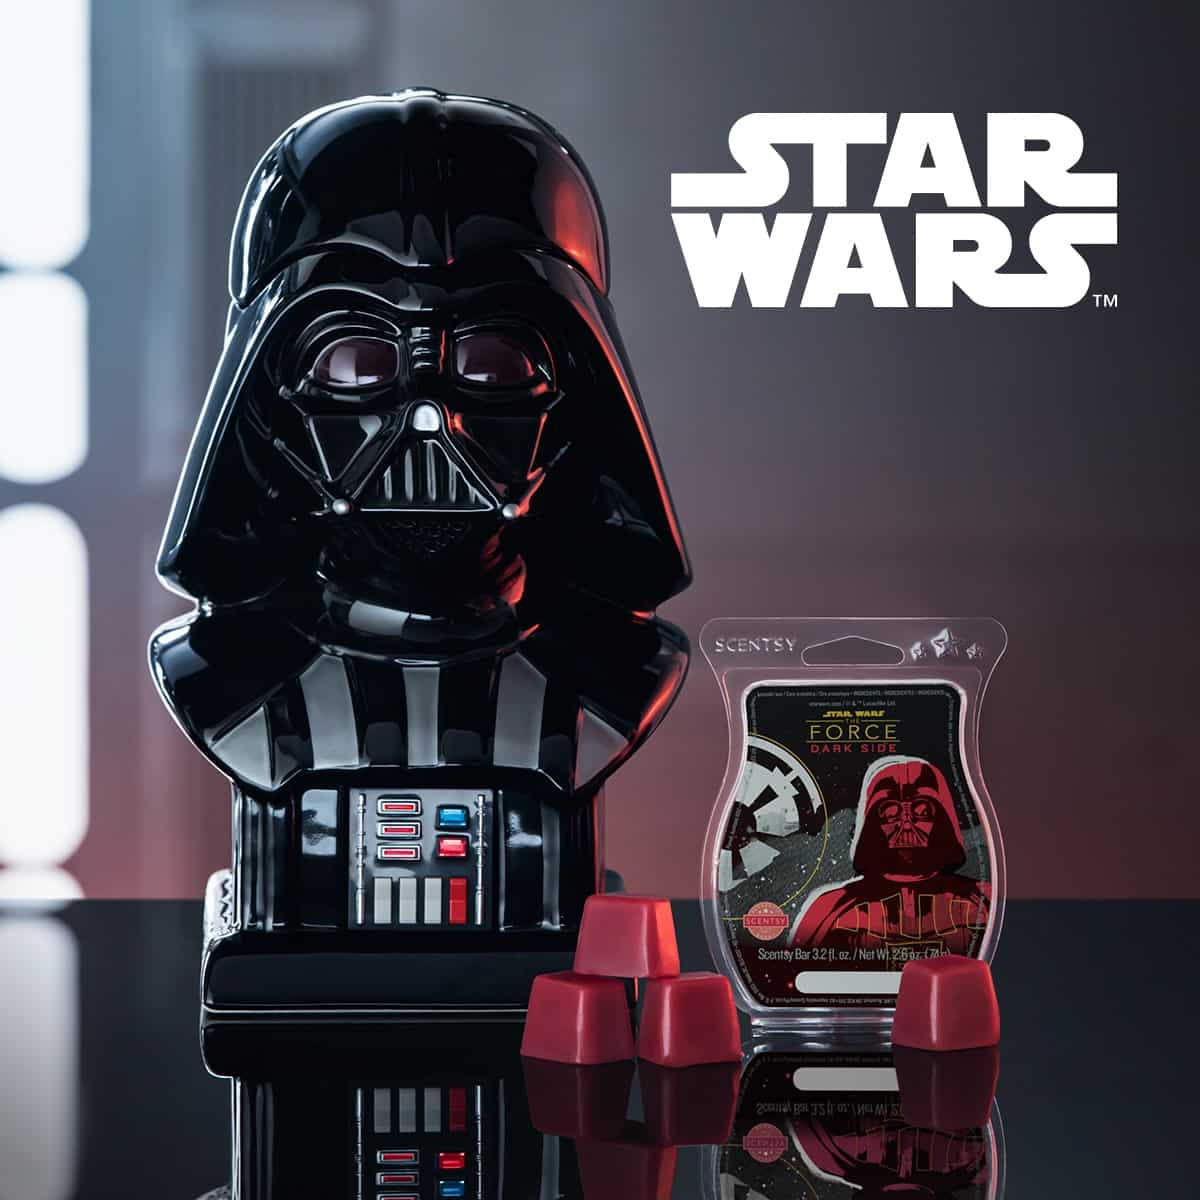 STAR WARS SCENTSY WARMER & DARK FORCE BAR